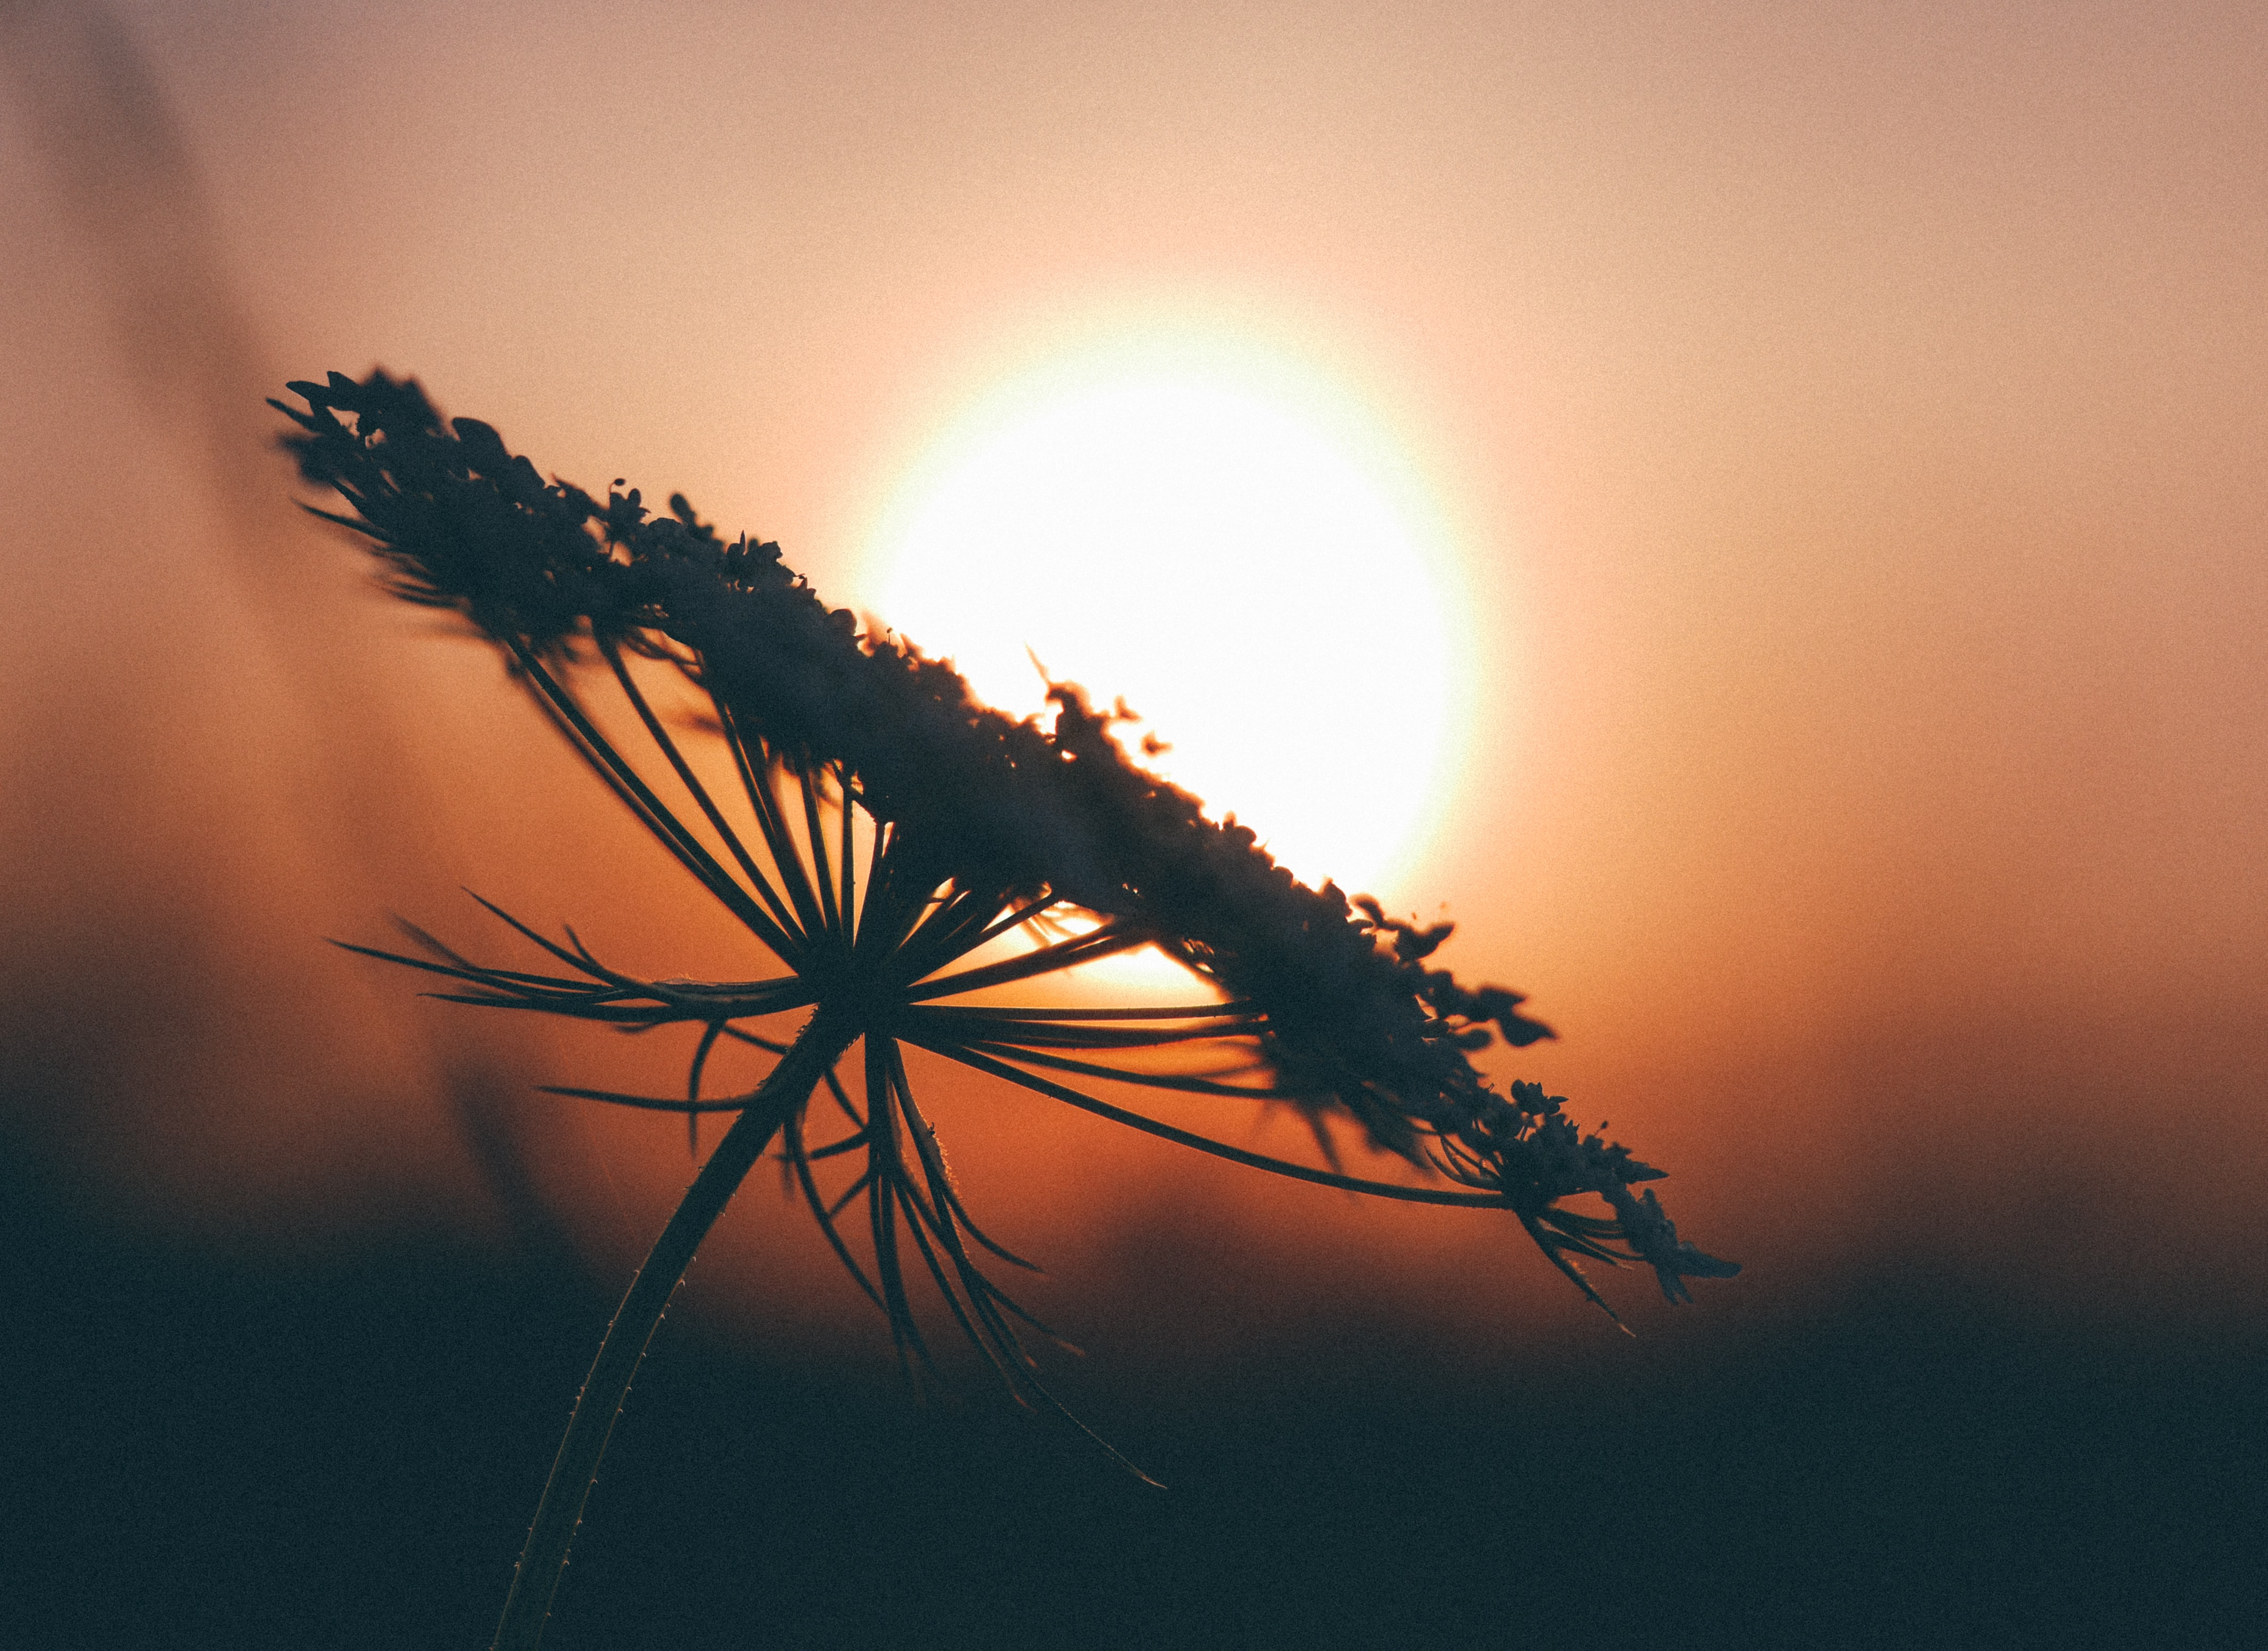 A silhouette of a wide flower head against the setting sun